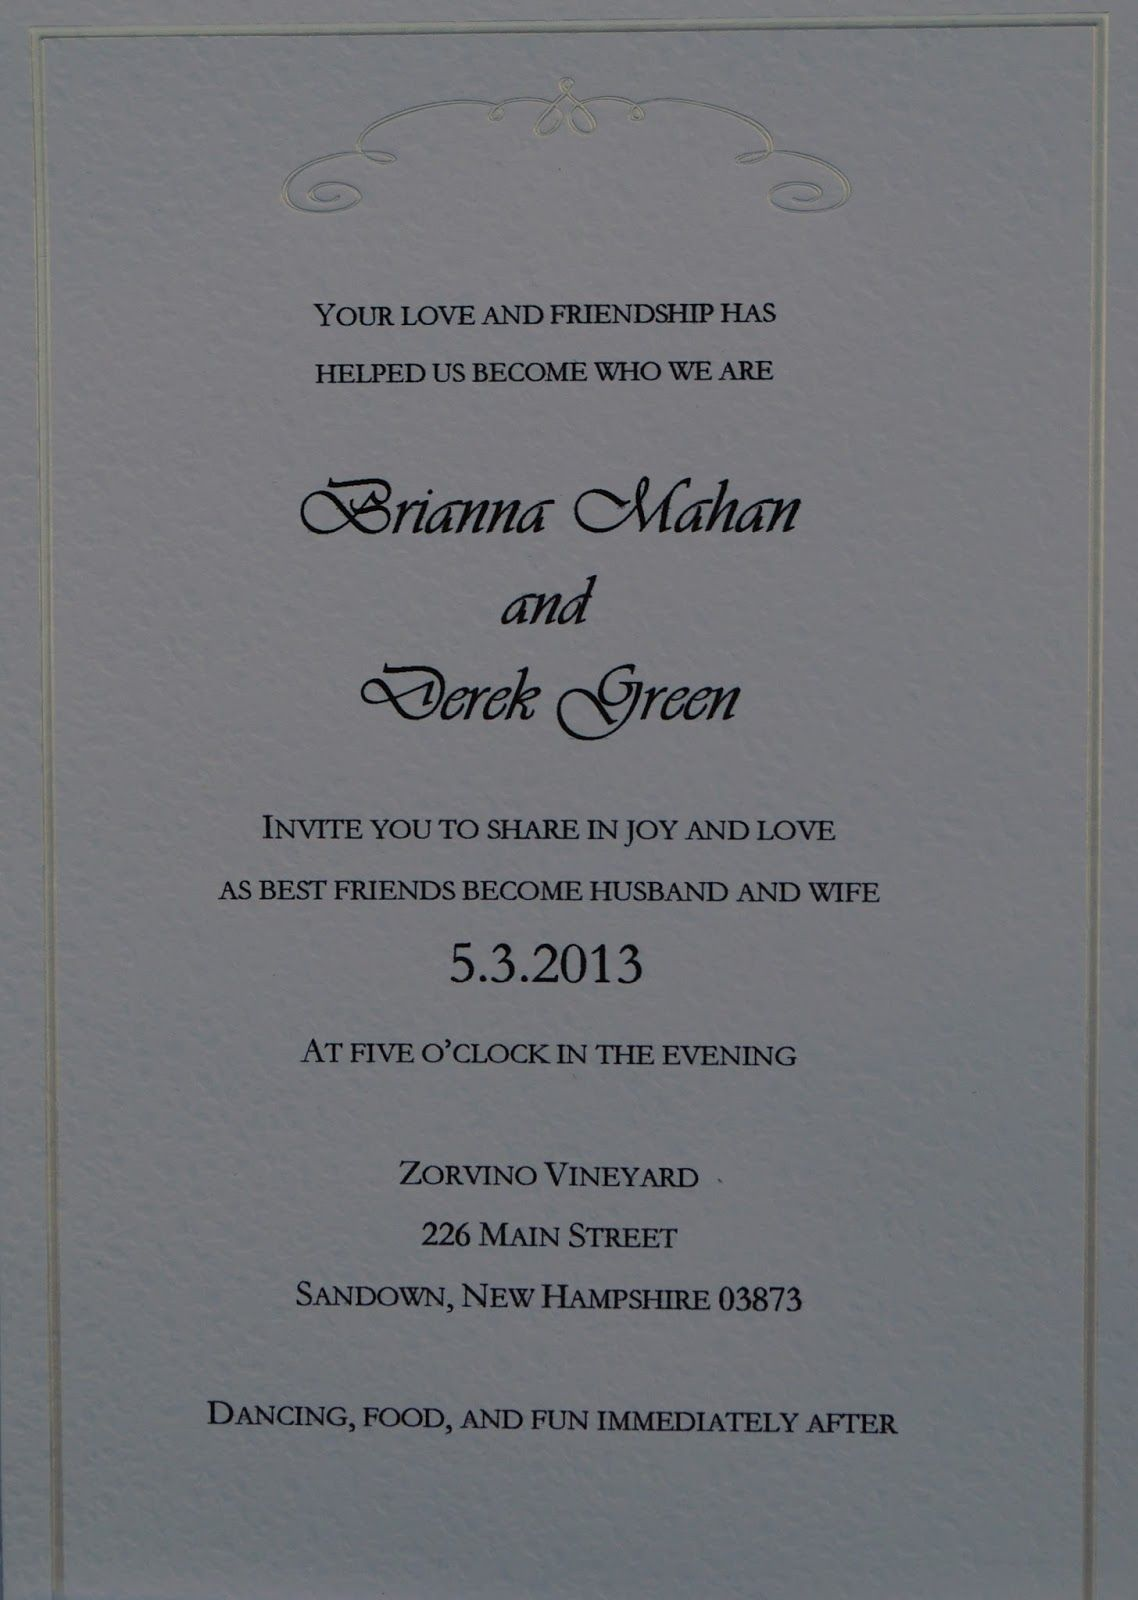 second wedding invitations wording%0A Wedding Invitation Wording Alternative Wording Options